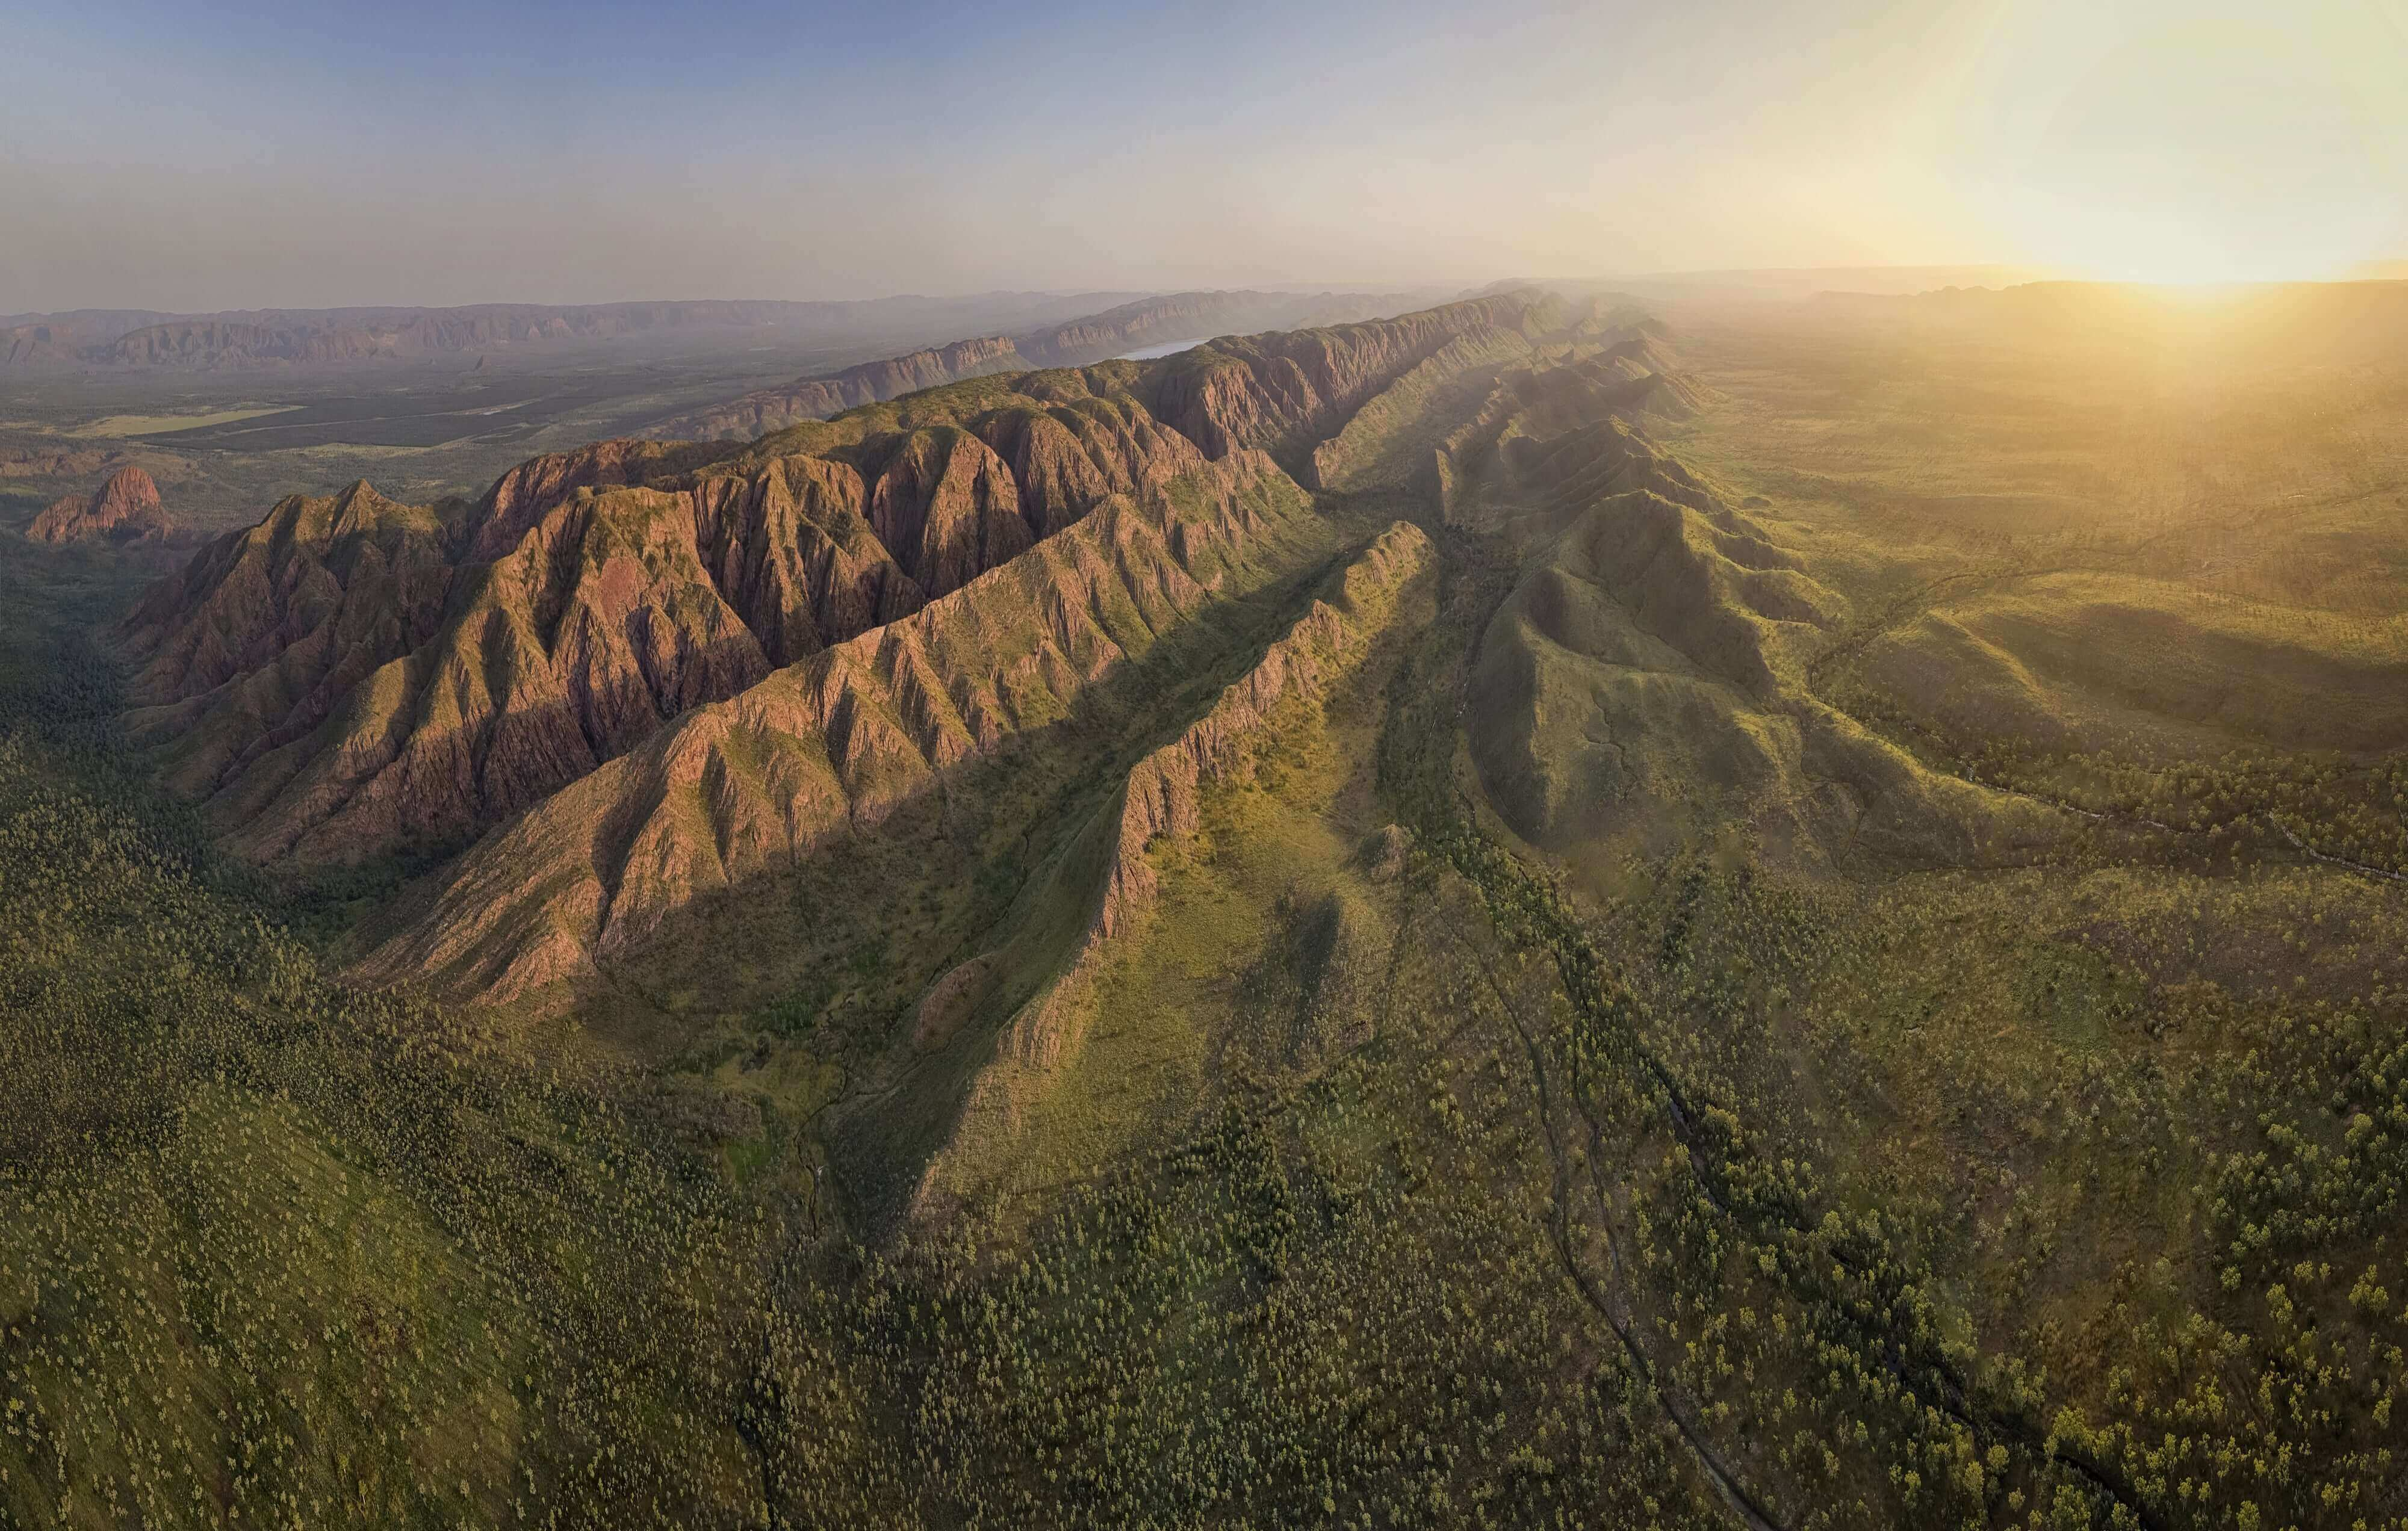 Drone shot of Outback Australia. Saw Ranges. Aptly named for how they resemble the teeth of a saw blade. Nestled in these stunning ranges is Wuggabun community, where many of its residents I went to school with in Wyndham in its hay day.